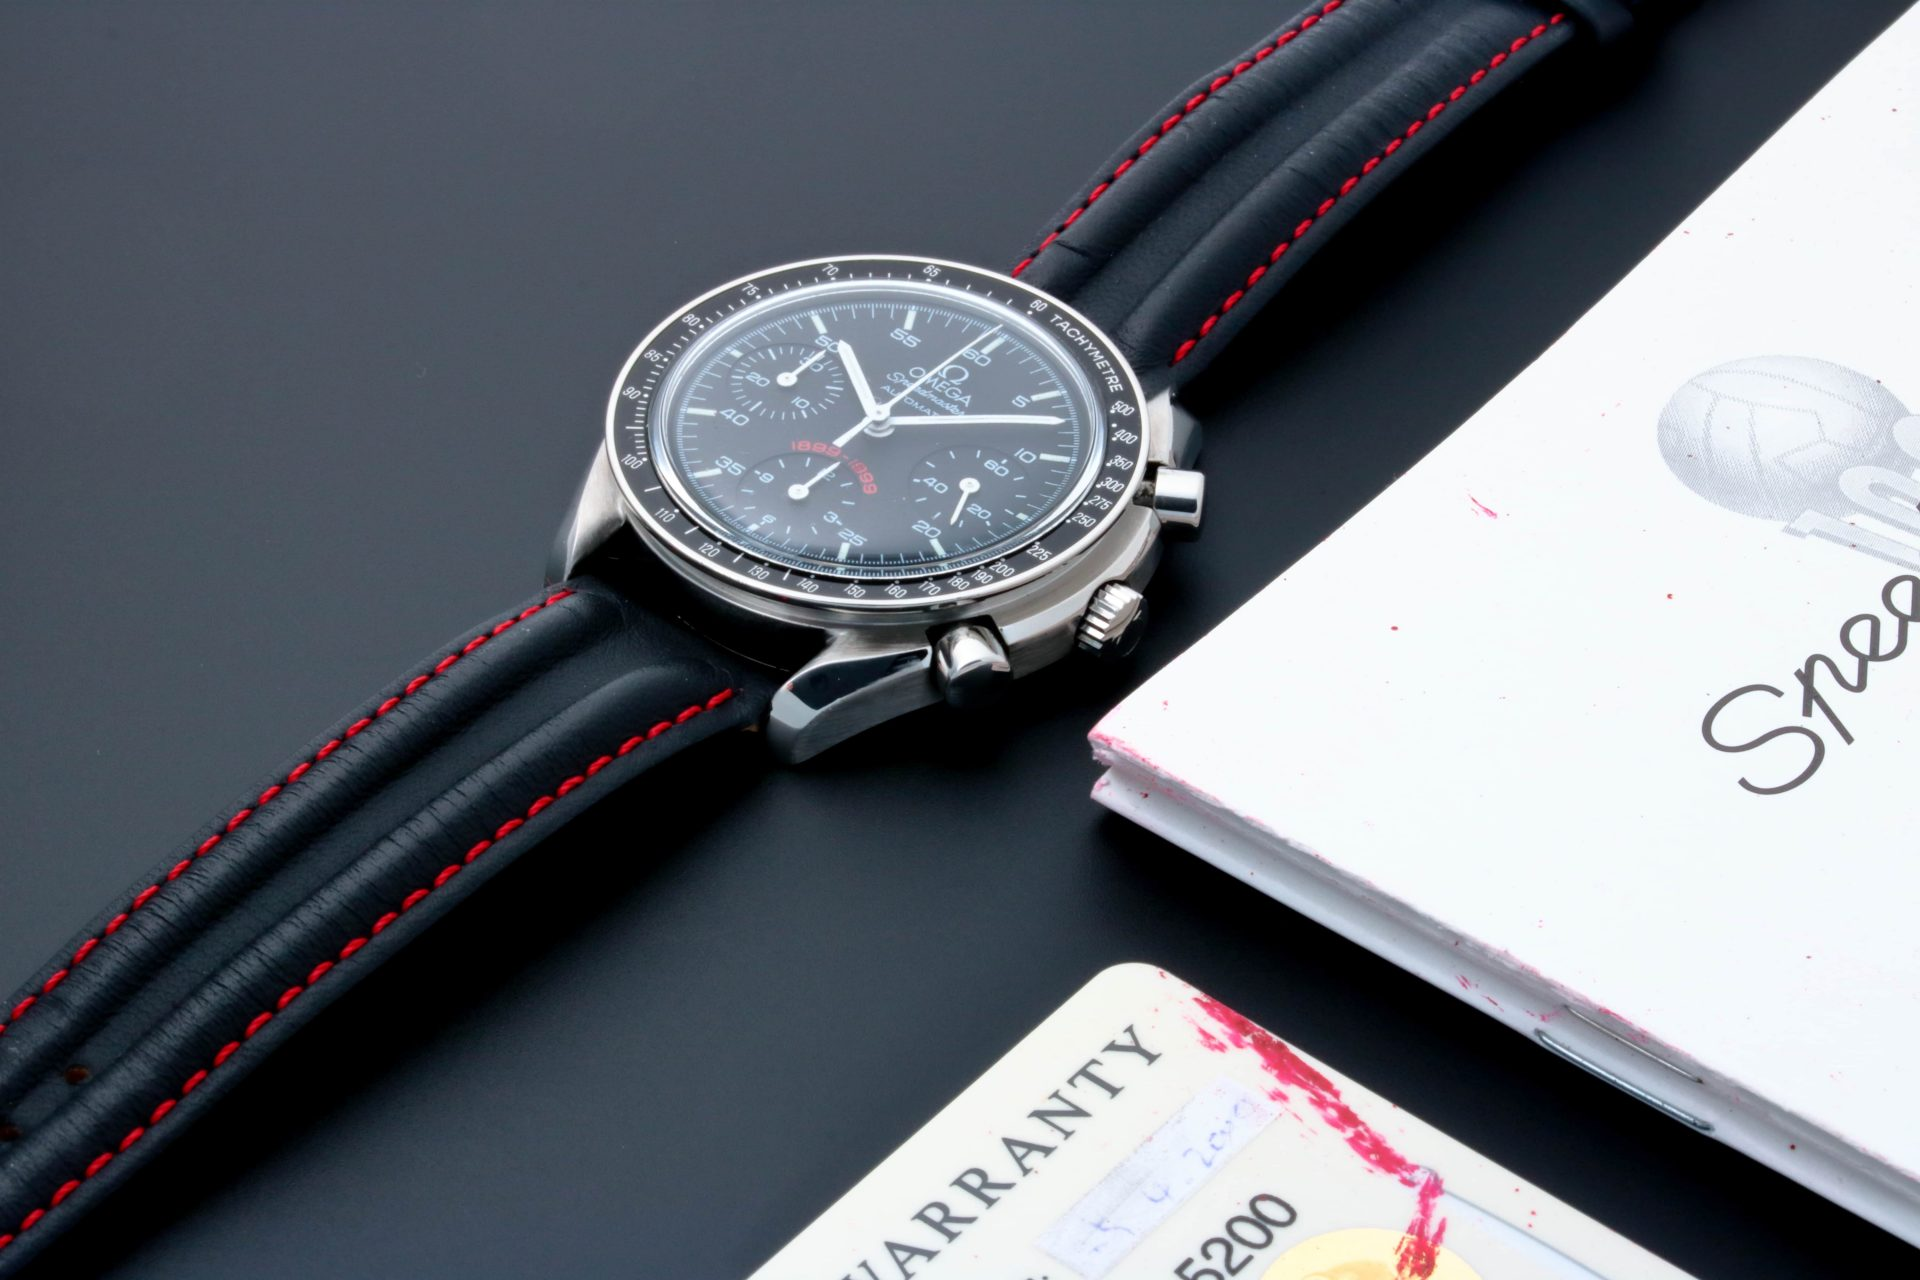 Omega Speedmaster A.C. Milan Watch 3810.51.41 With Warranty Card And Certificate Of Authenticity